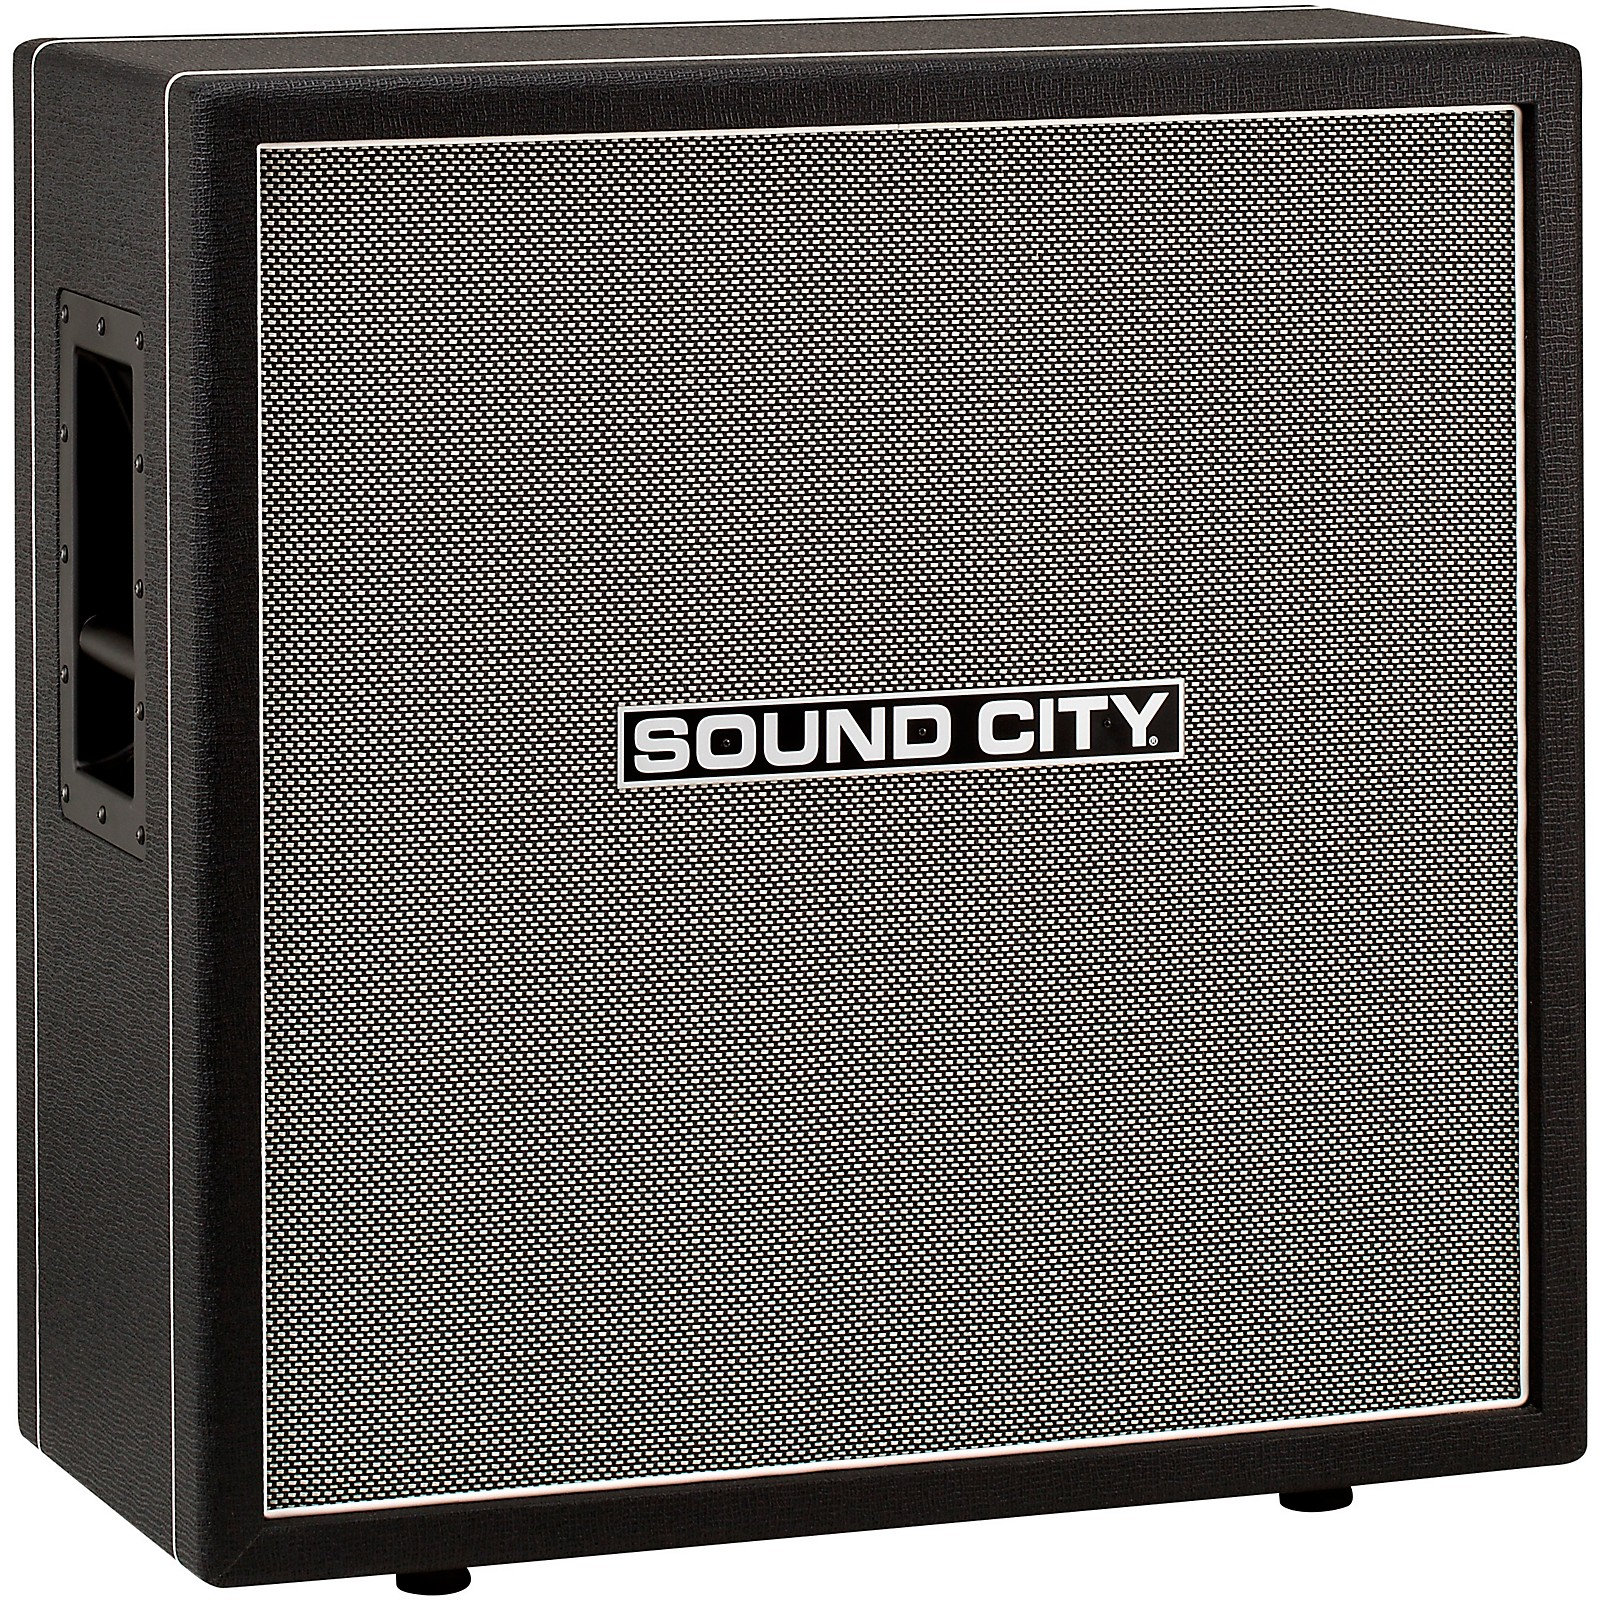 Sound City SC412 280W 4x12 Guitar Speaker Cabinet